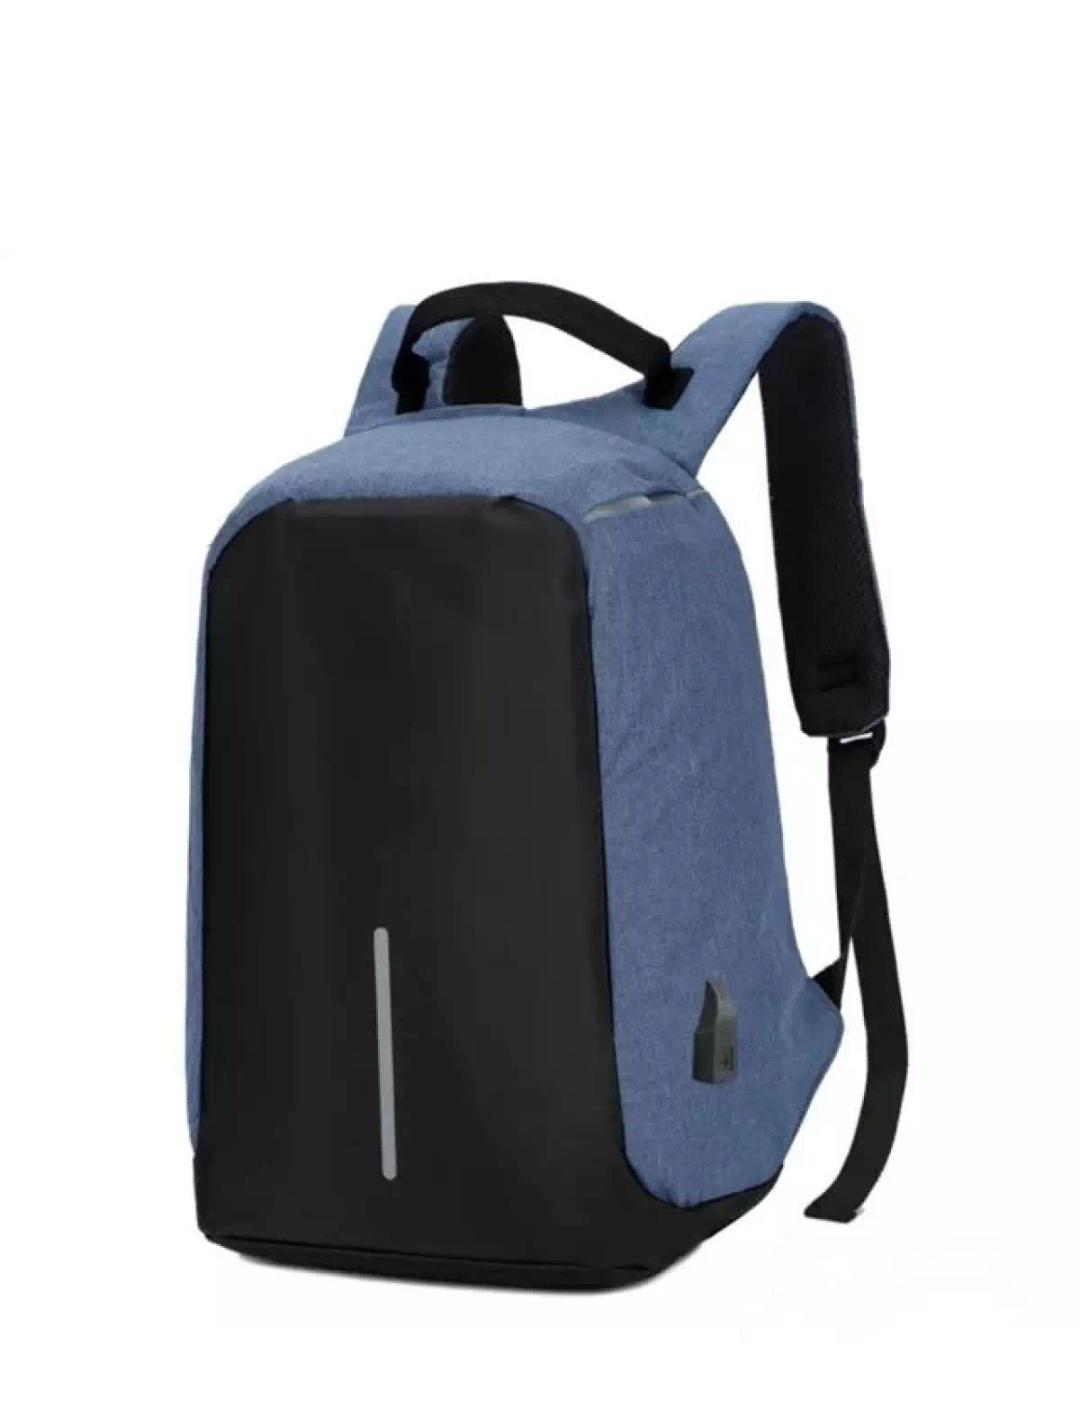 Tas Ransel Laptop Polo Anti maling USB port charger